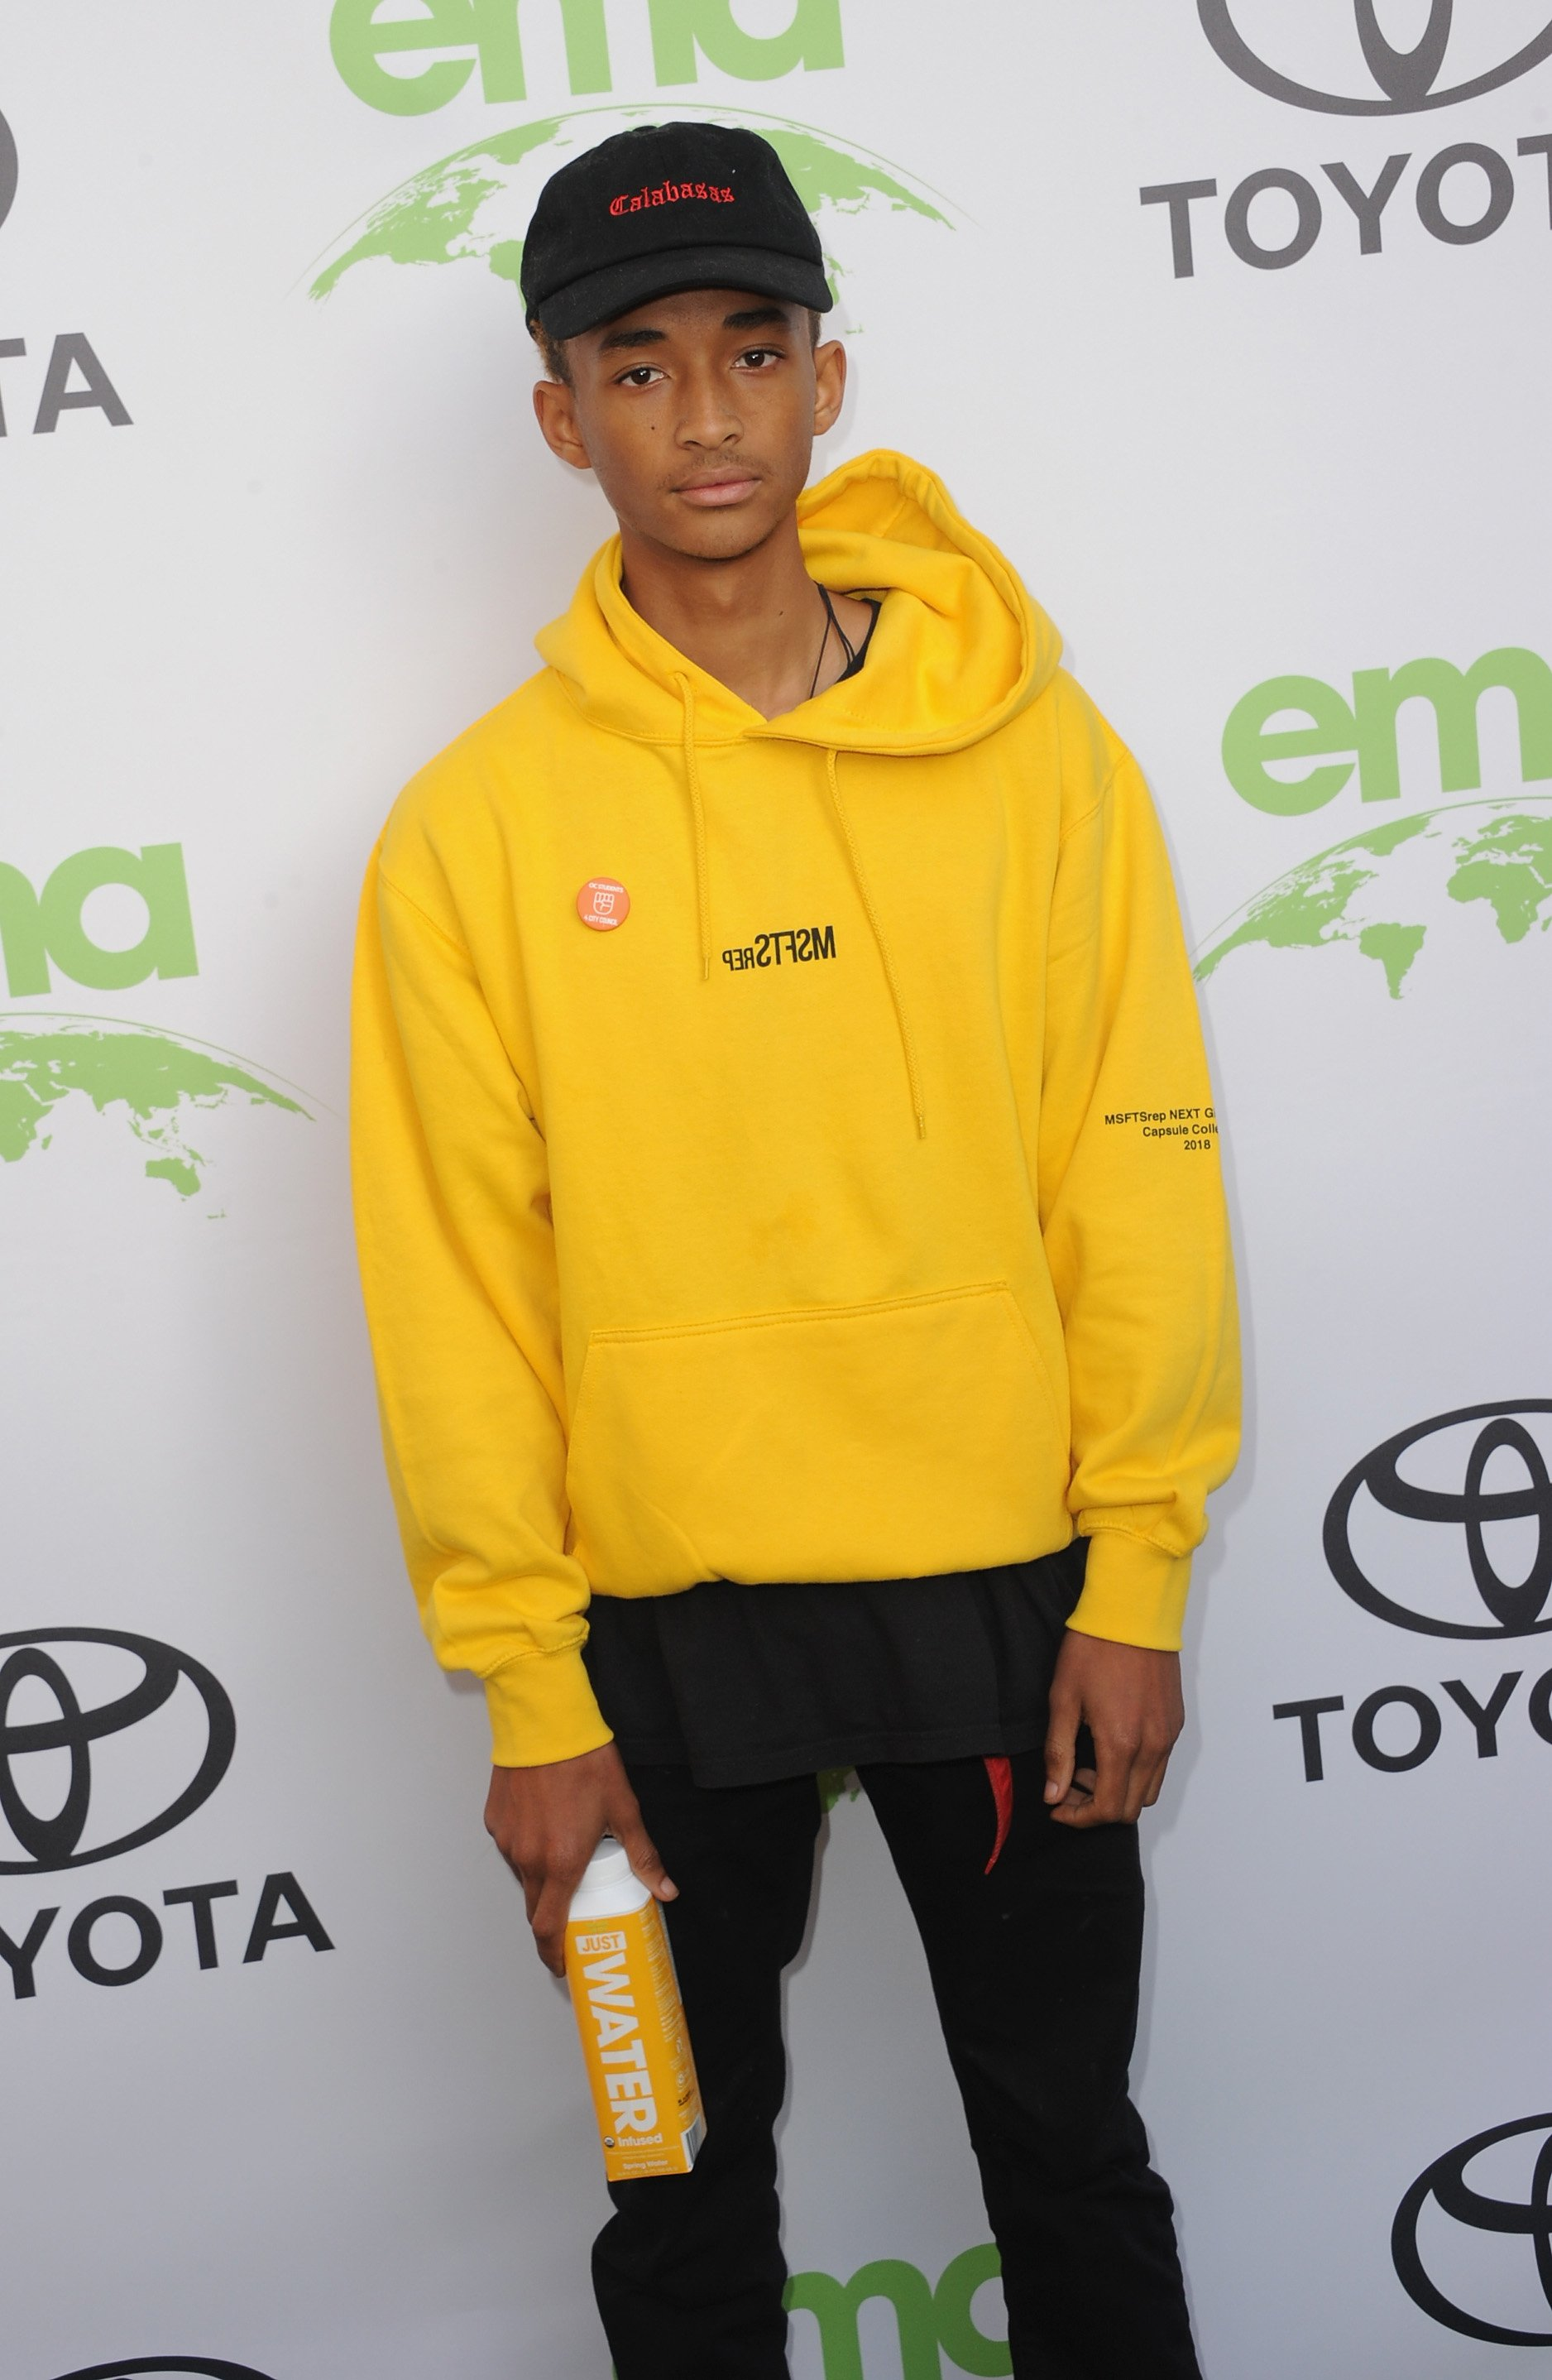 Jaden Smith at the 28th Annual EMA Awards in California on May 22, 2018 | Photo: Getty Images